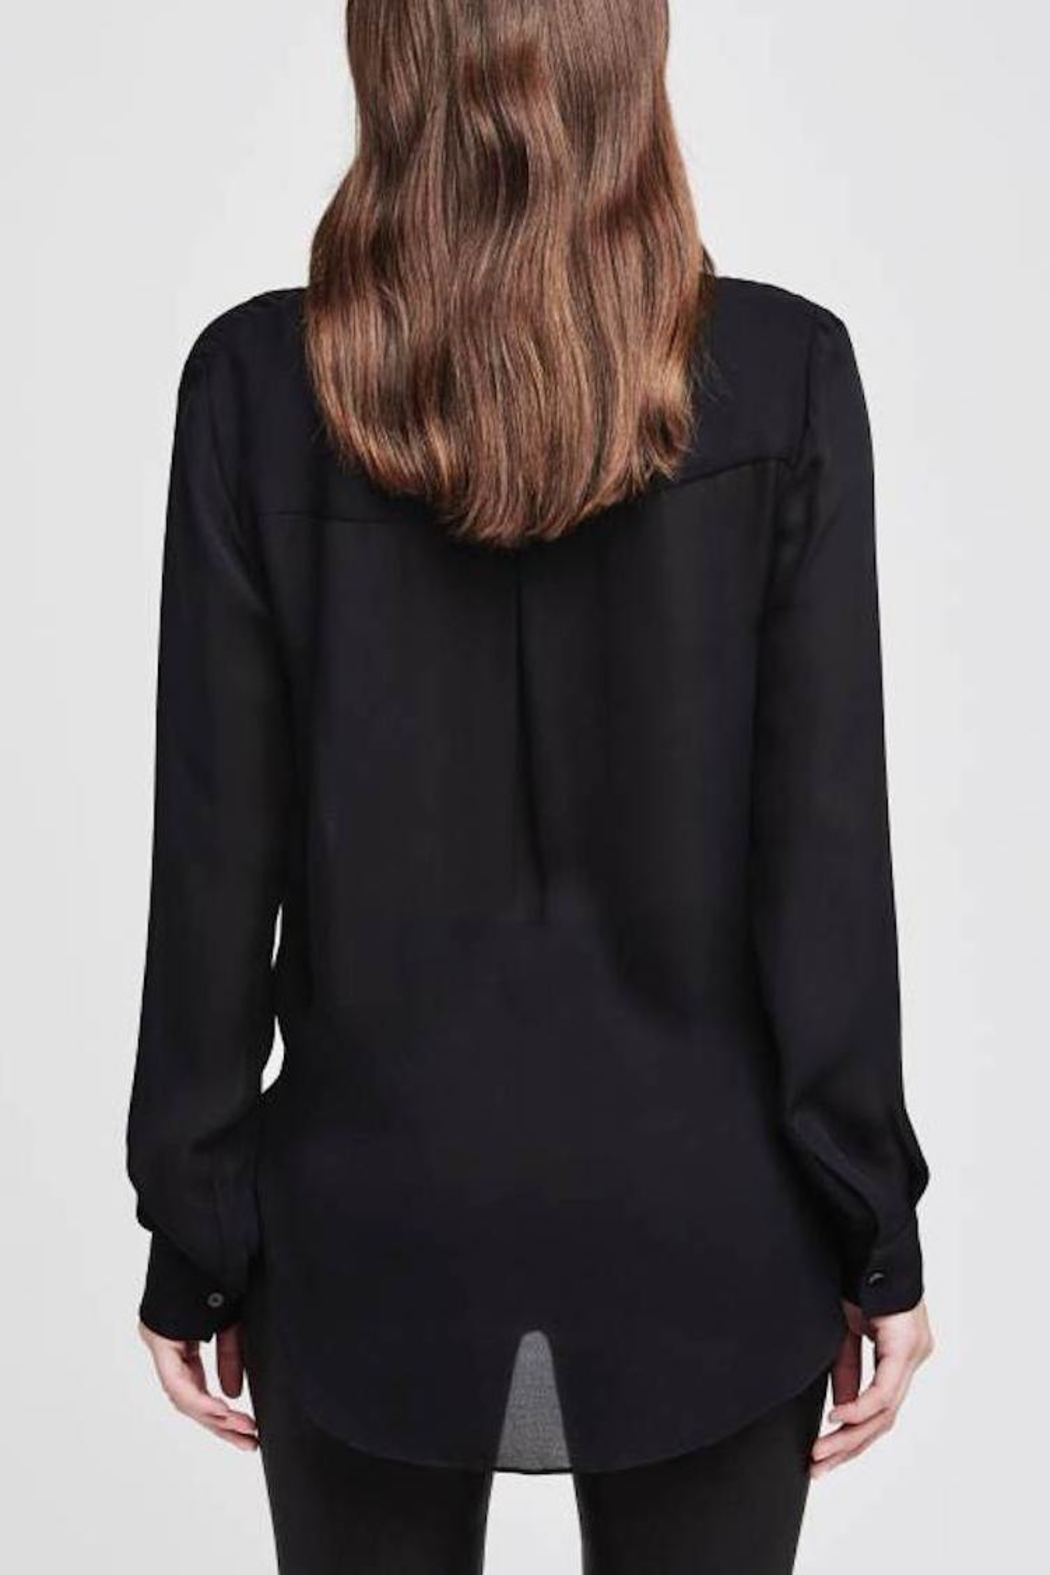 L'Agence Mariposa Twist Blouse - Side Cropped Image